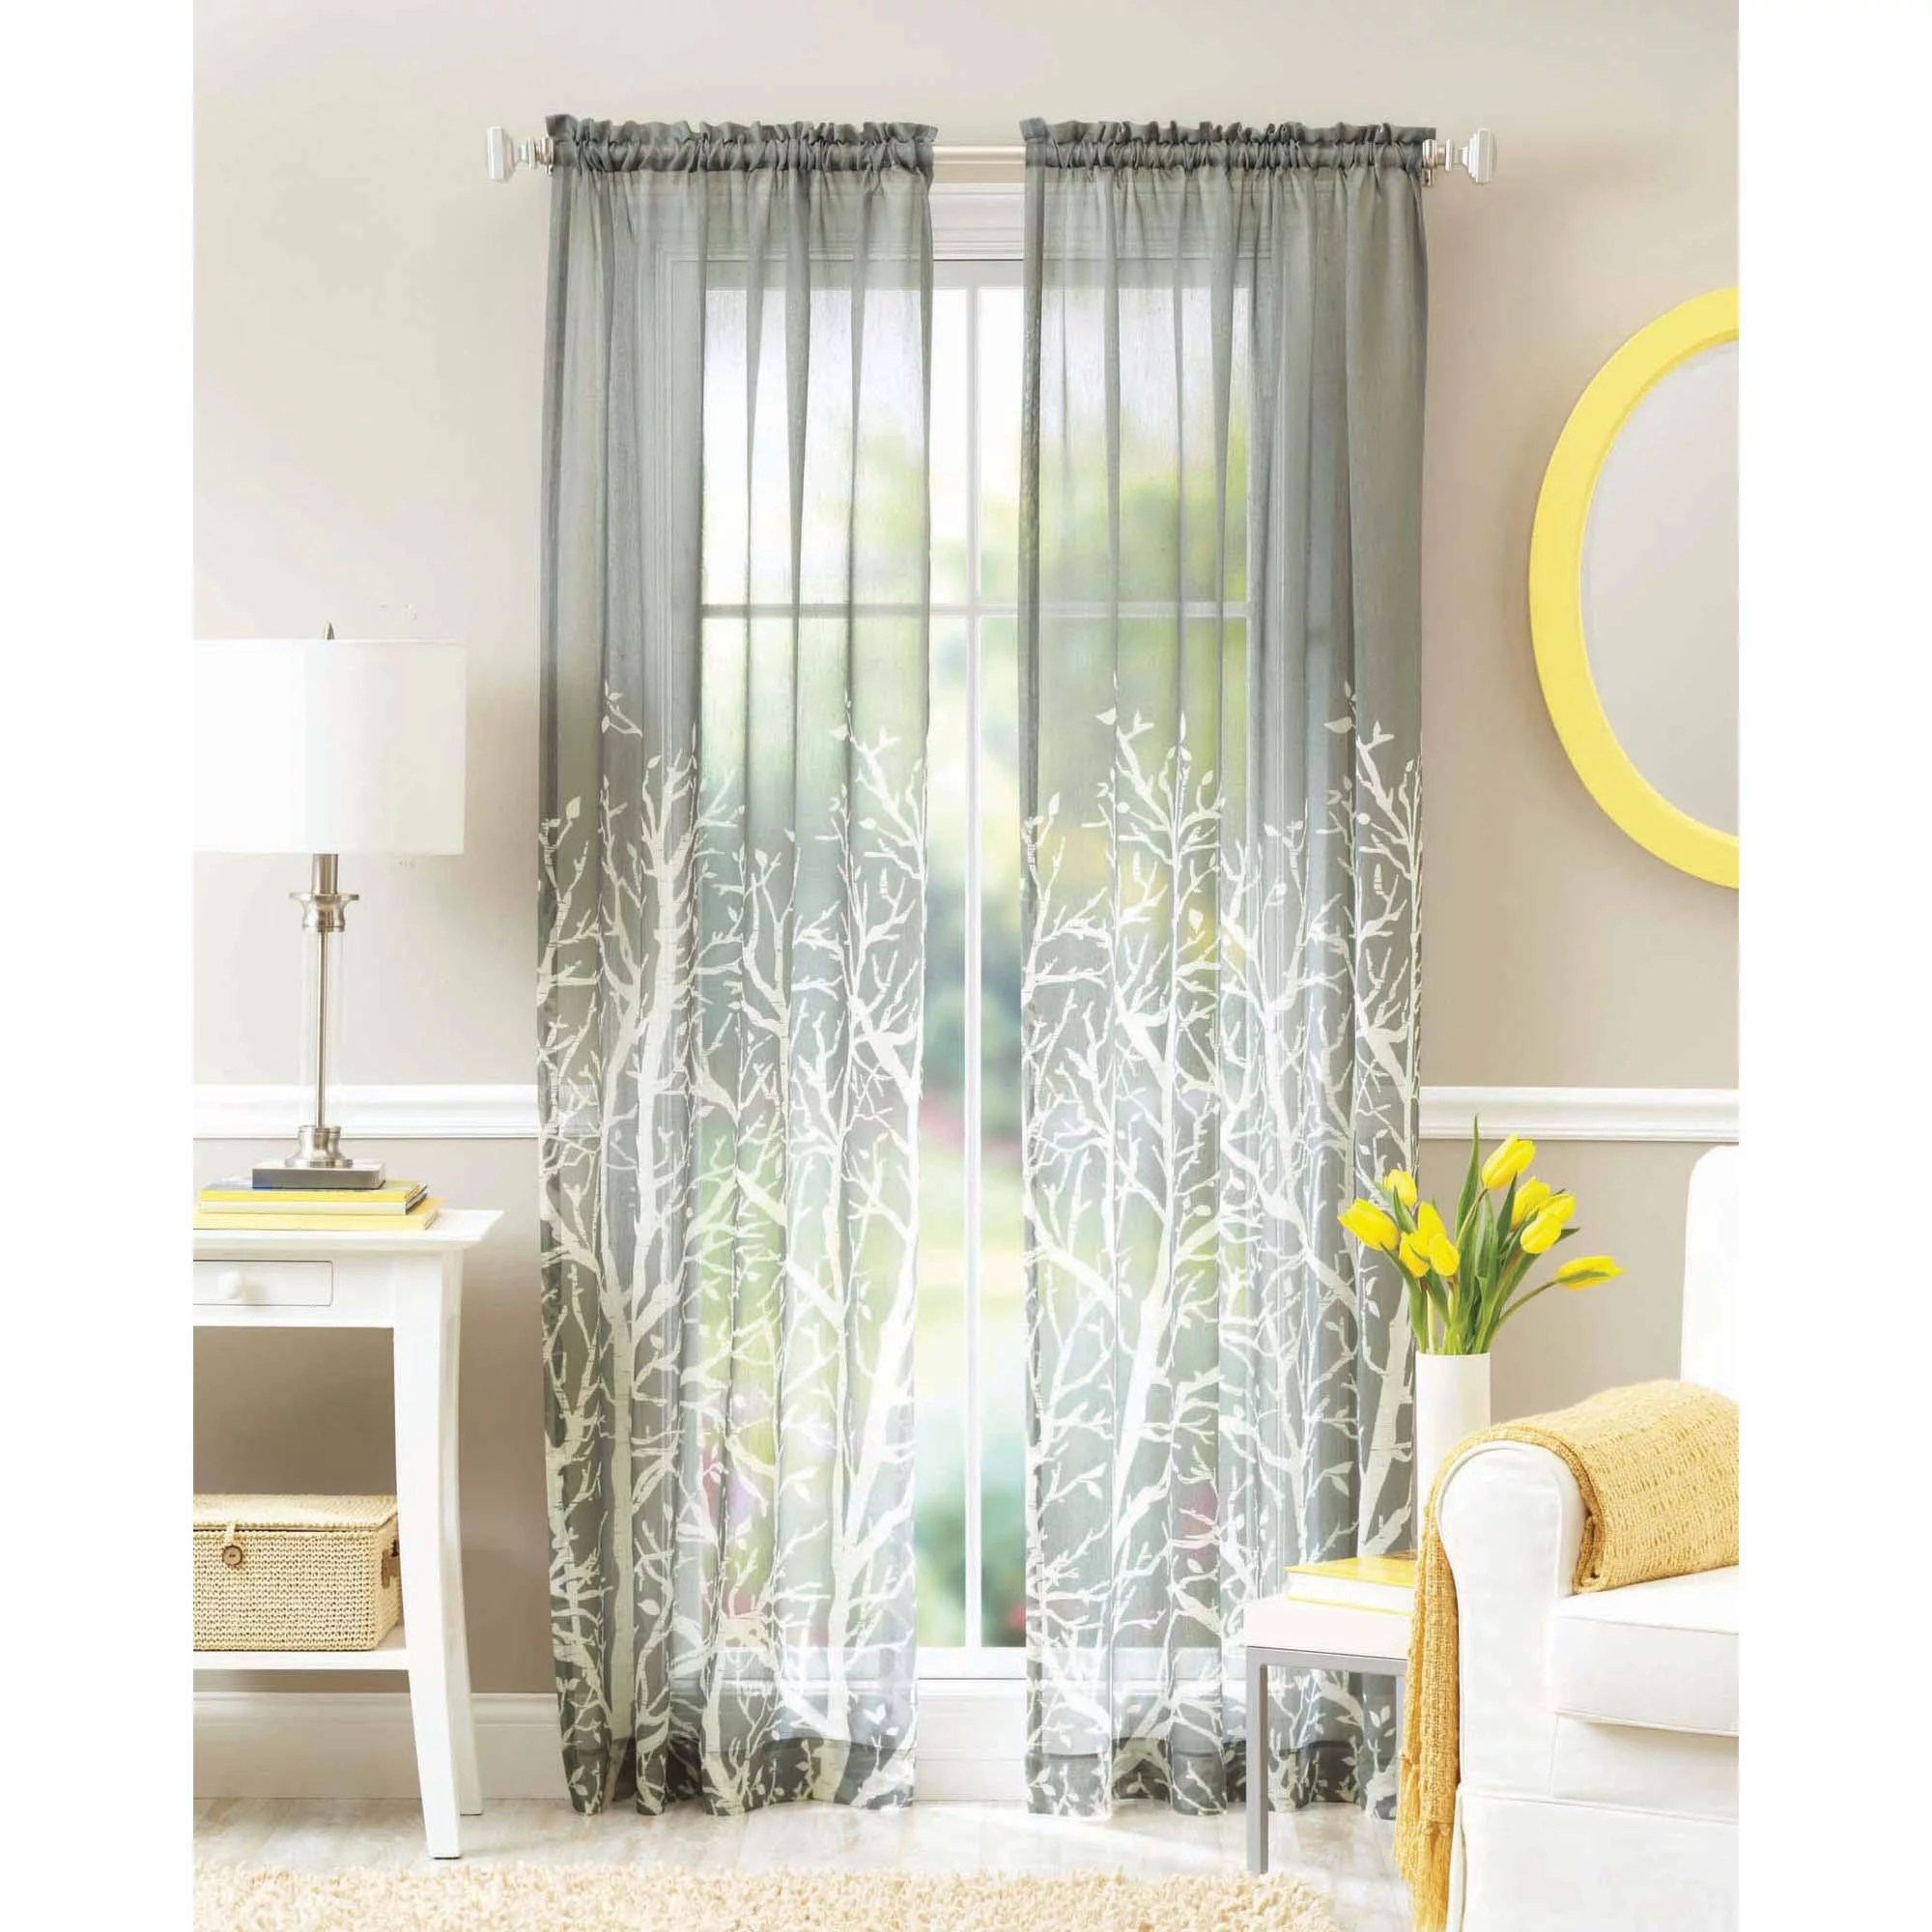 White Sheer Door Panel Curtains Sheer Voile Window Curtain Panel With Metal Grommets Leah